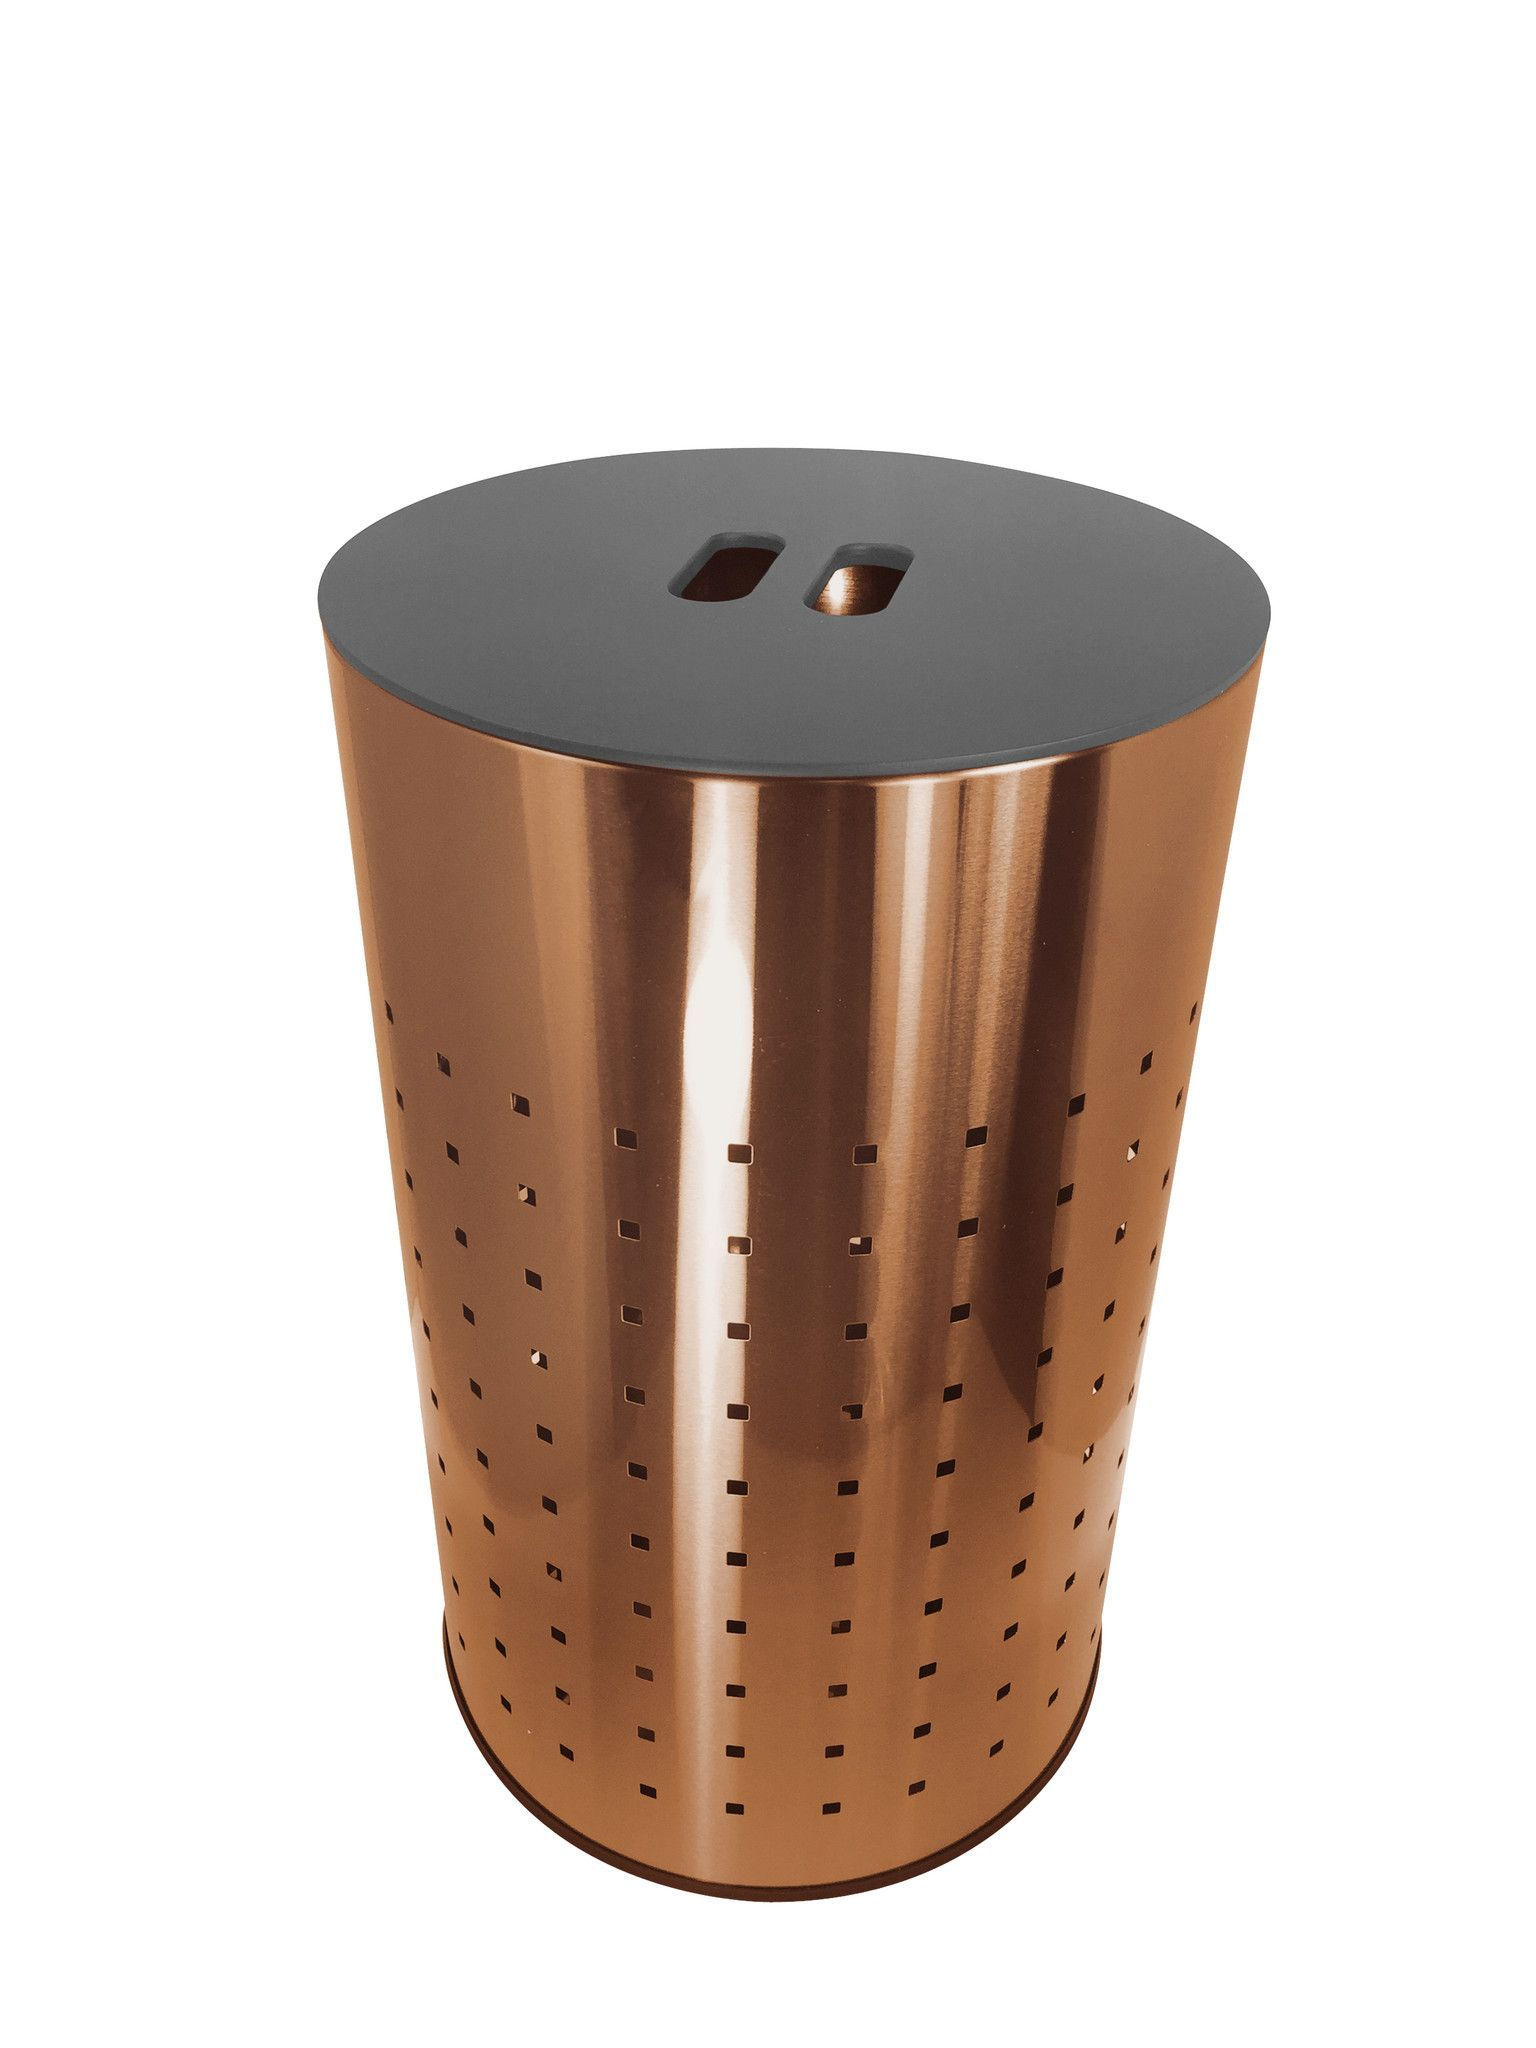 brushed copper laundry bin hamper 50l ventilated stainless steel